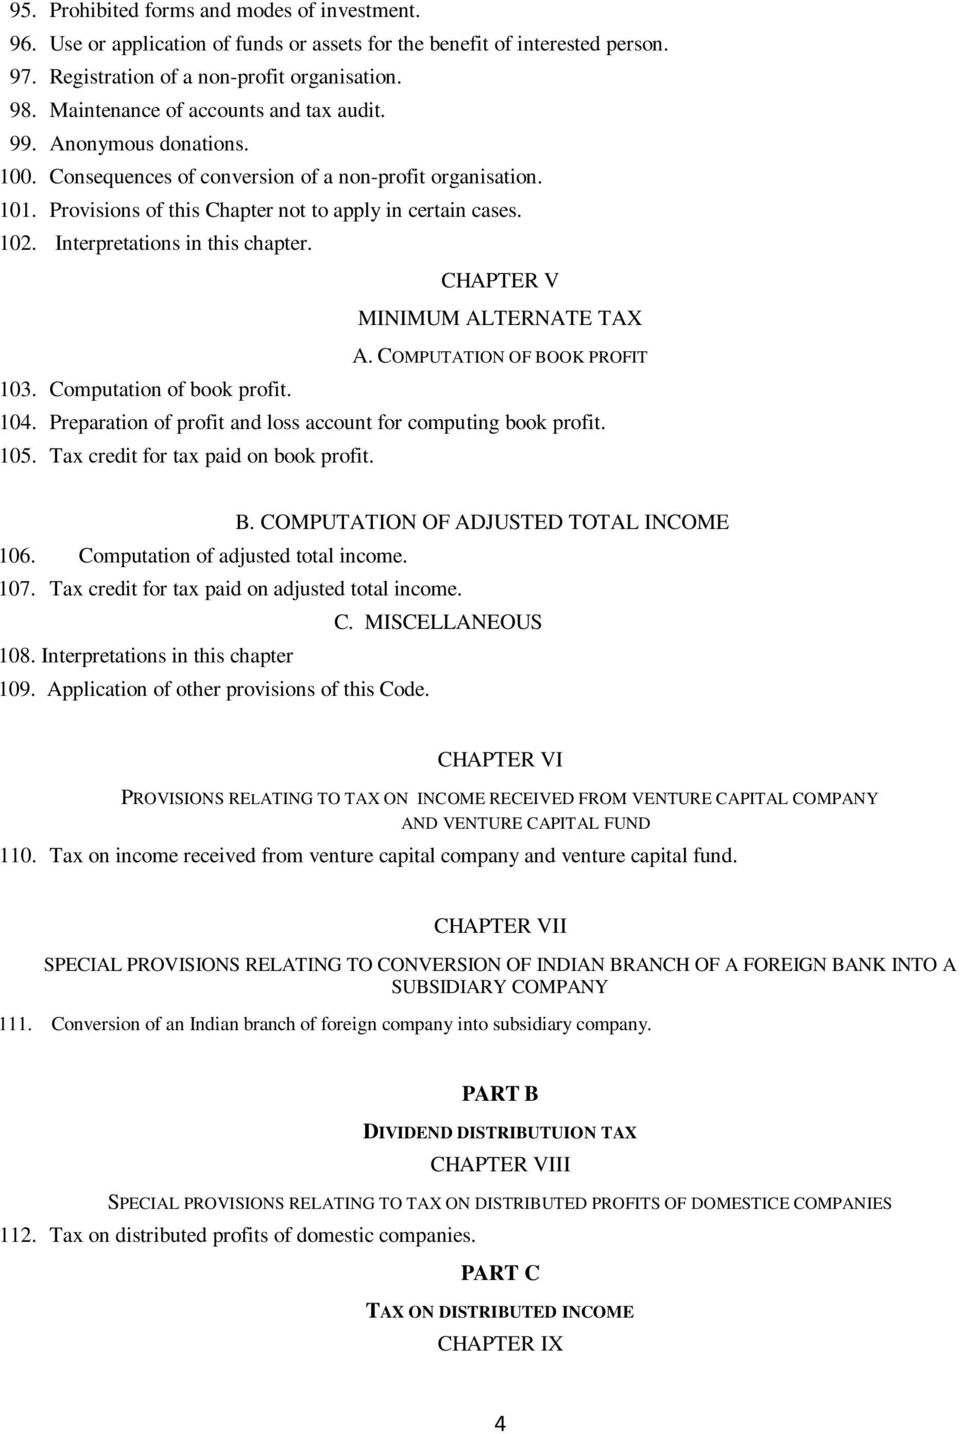 Interpretations in this chapter. CHAPTER V MINIMUM ALTERNATE TAX A. COMPUTATION OF BOOK PROFIT 103. Computation of book profit. 104. Preparation of profit and loss account for computing book profit.